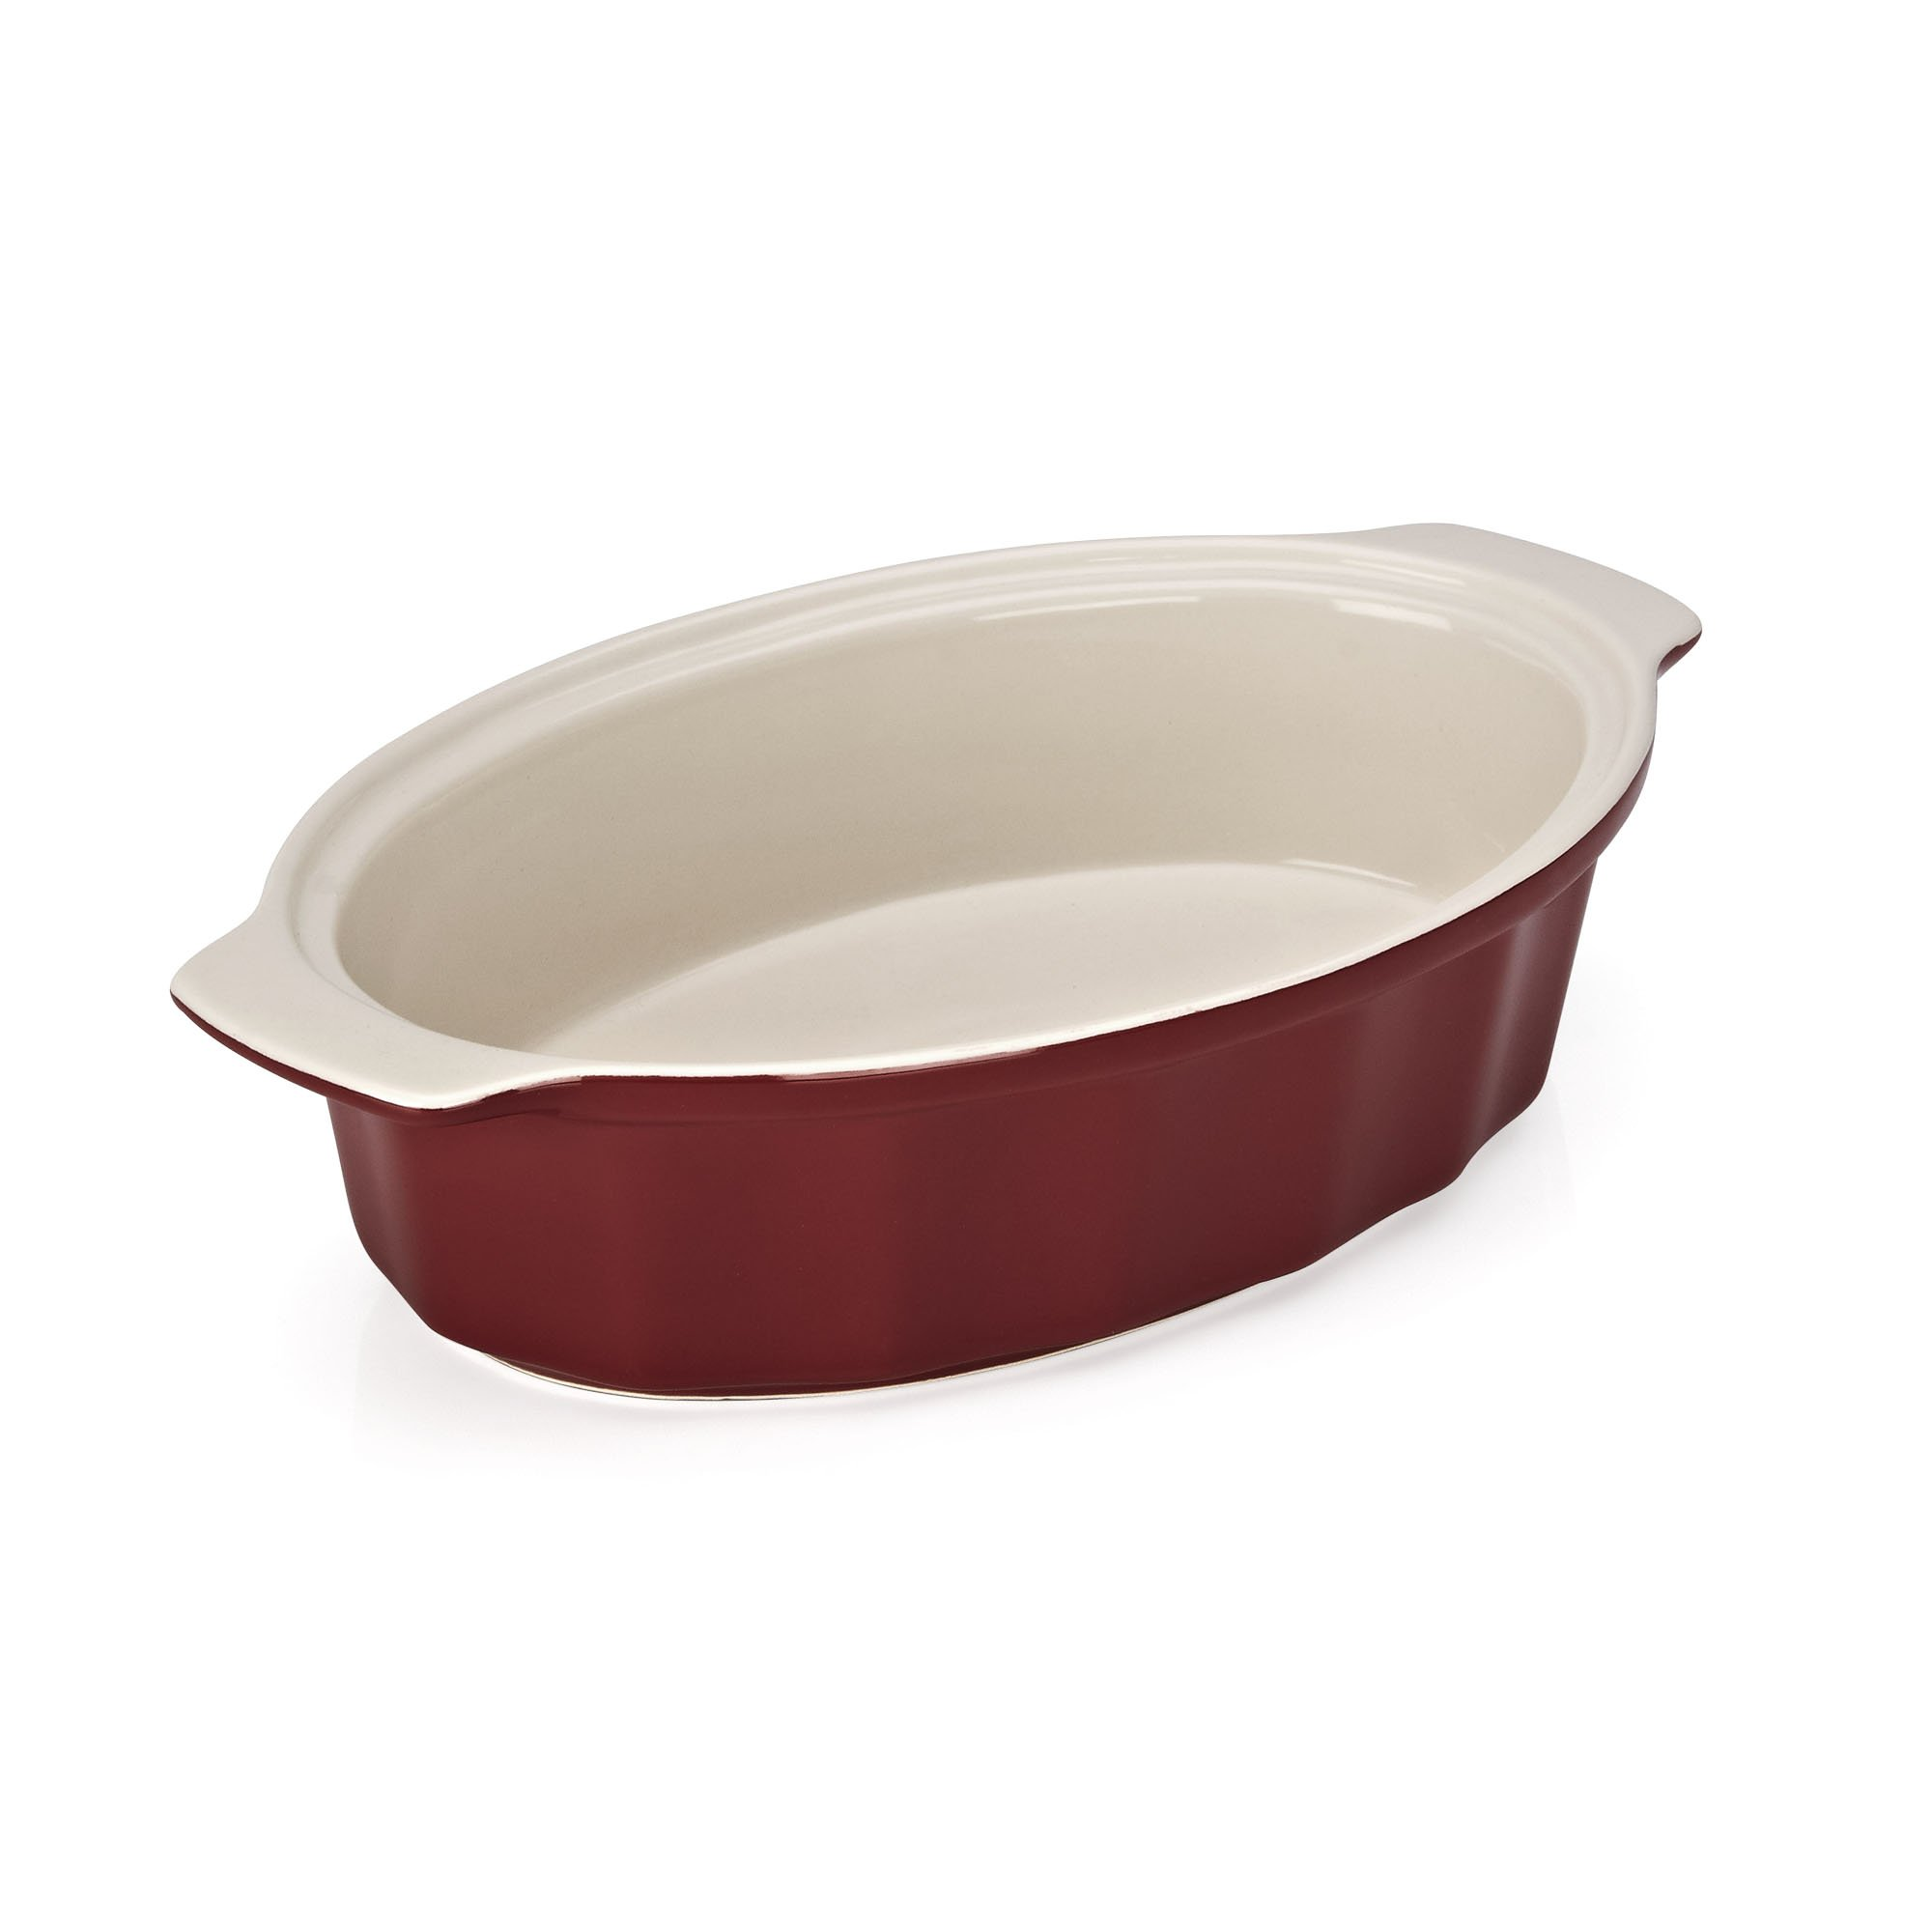 Good Cook 04489 OvenFresh Stoneware Ceramic Casserole Dish, 1.75 quart, Red by Good Cook